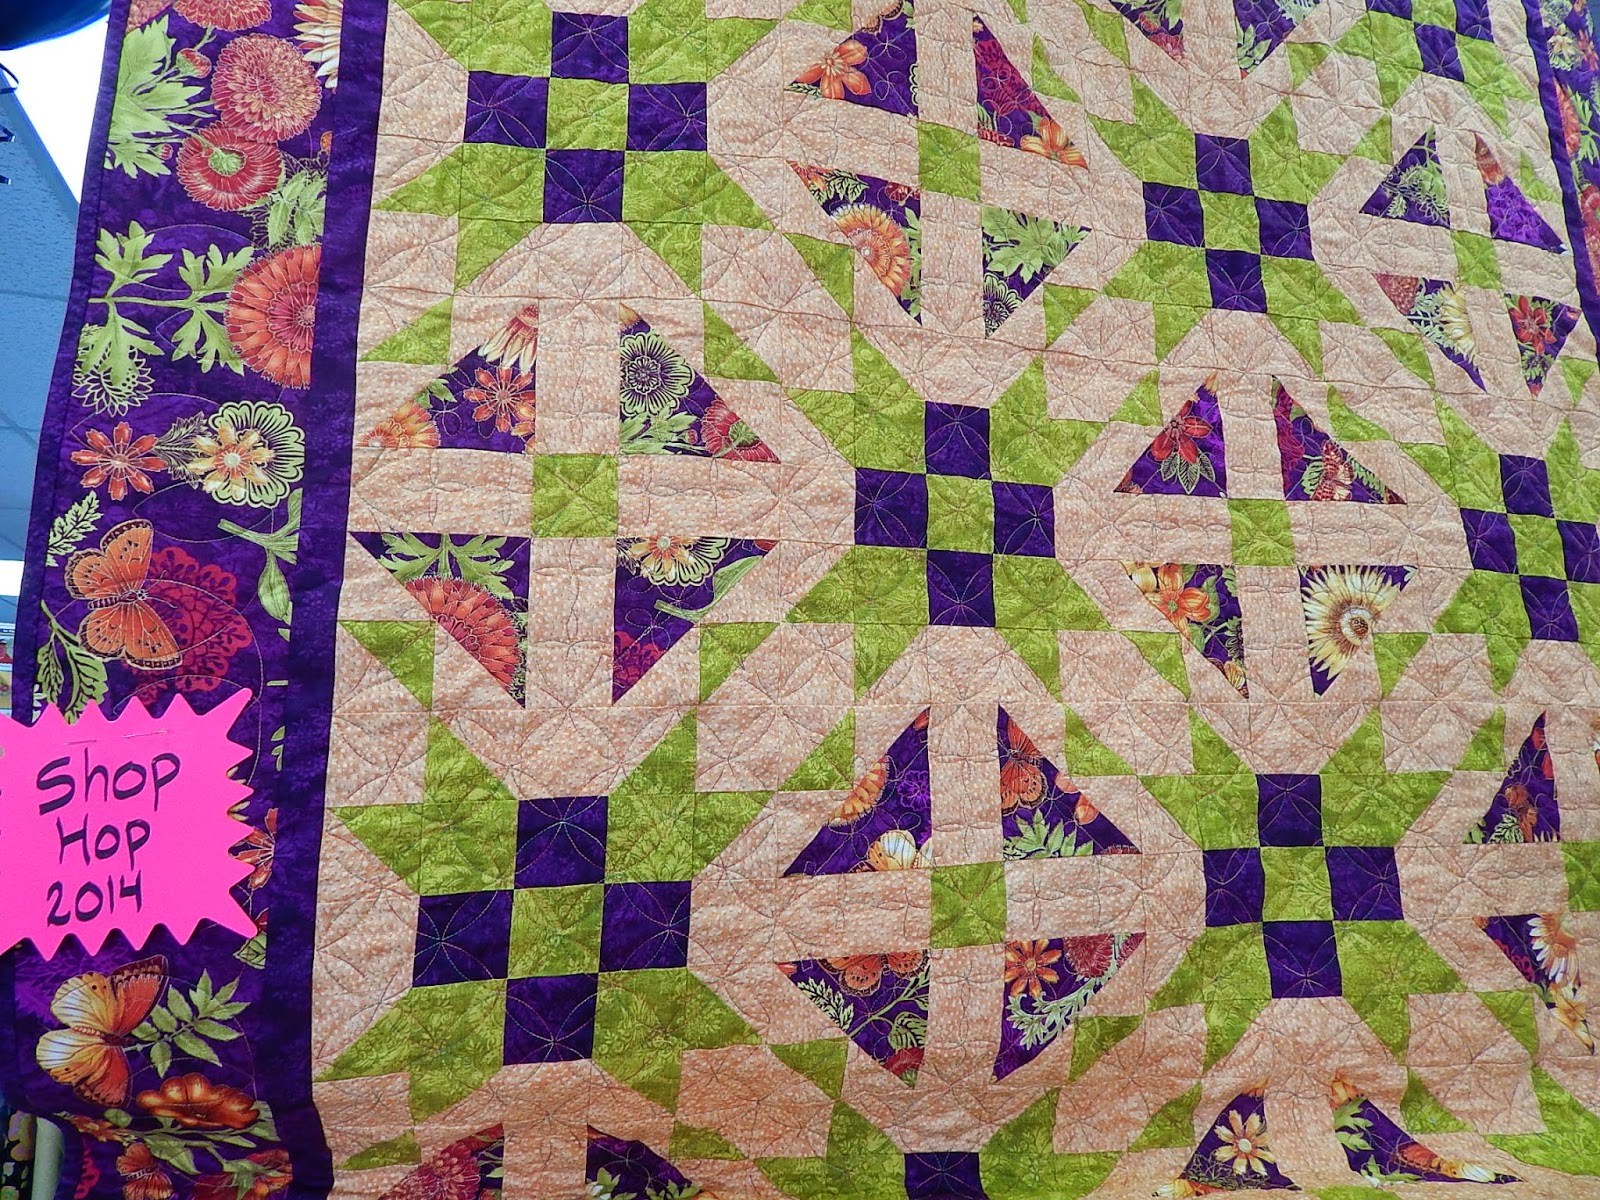 Quilting Blog - Cactus Needle Quilts, Fabric and More: Rally In ... : sun valley quilts - Adamdwight.com